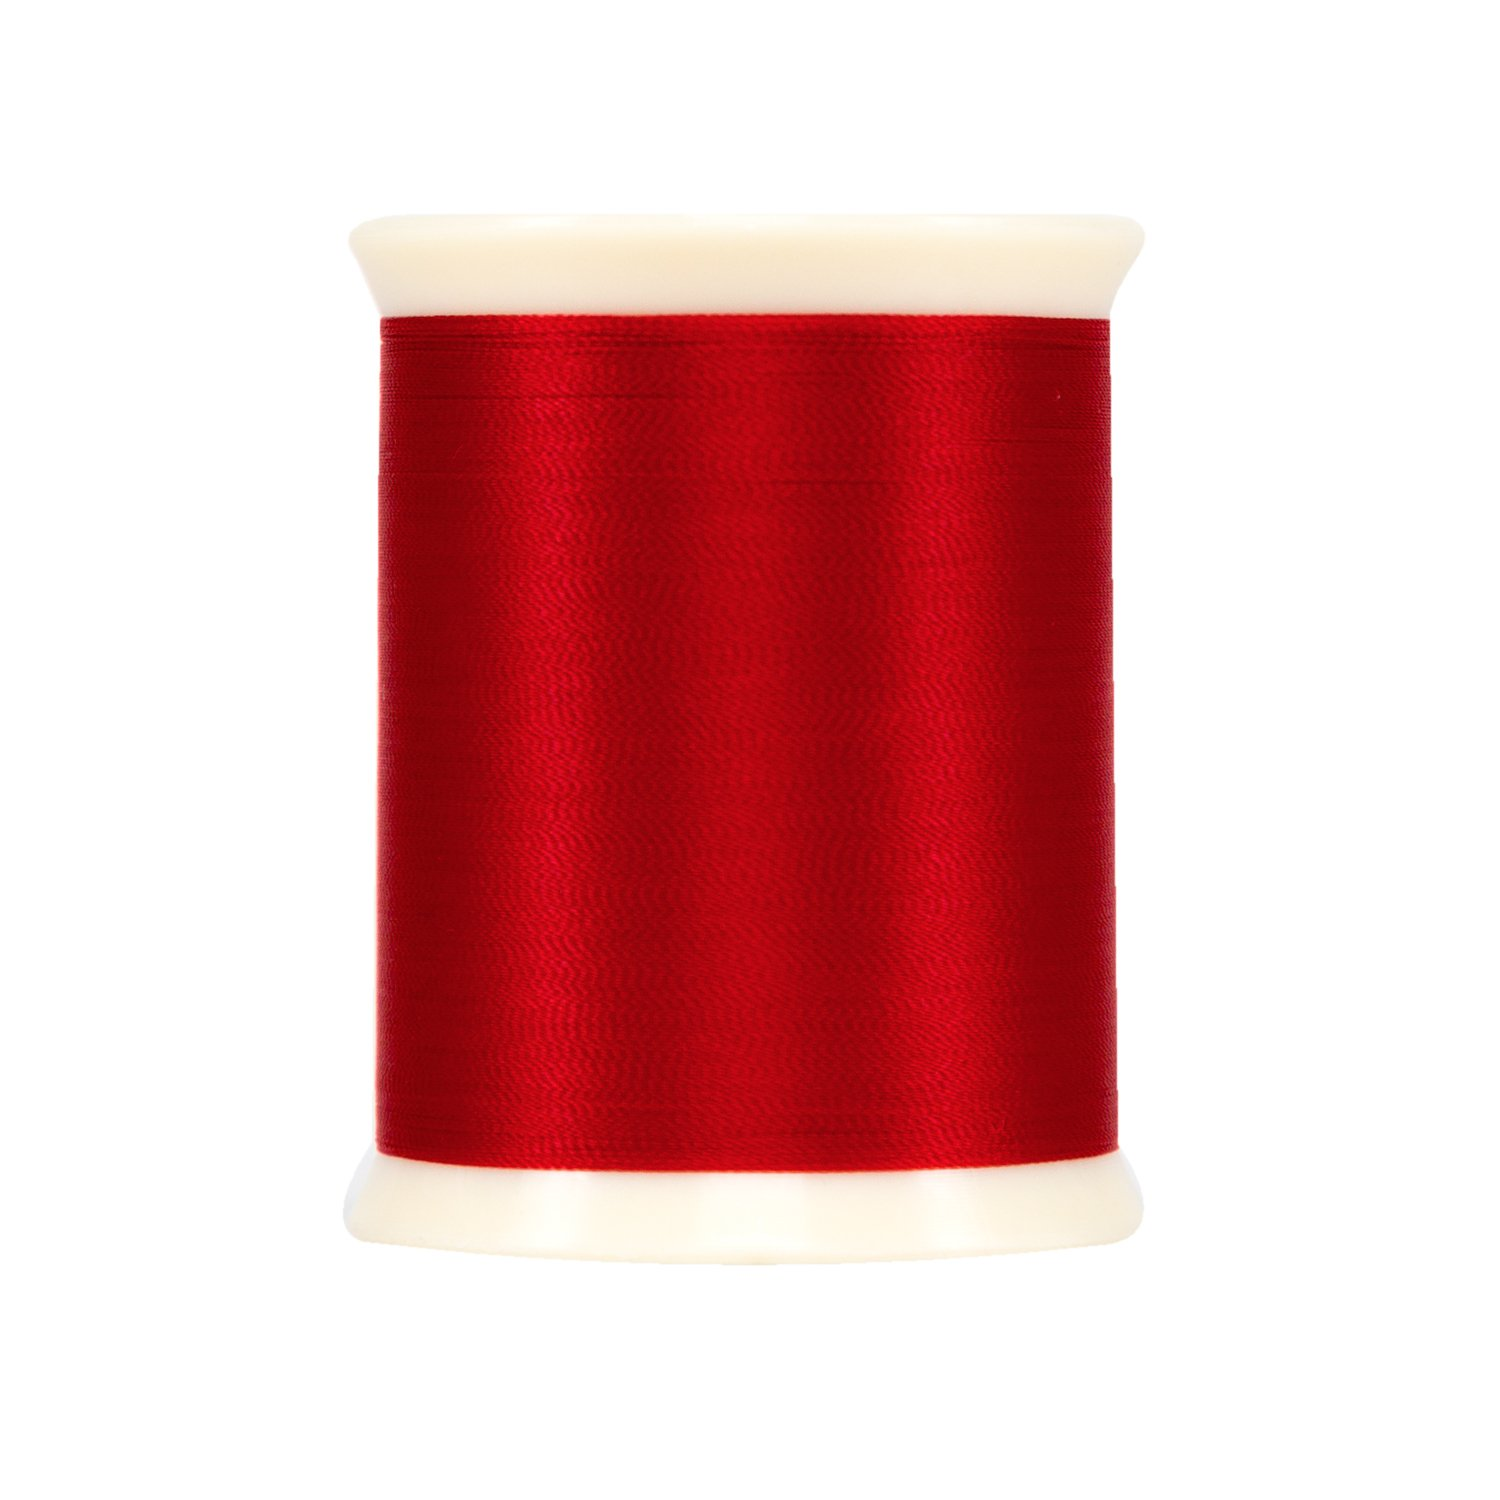 #7016 Bright Red MicroQuilter 800 yd spool